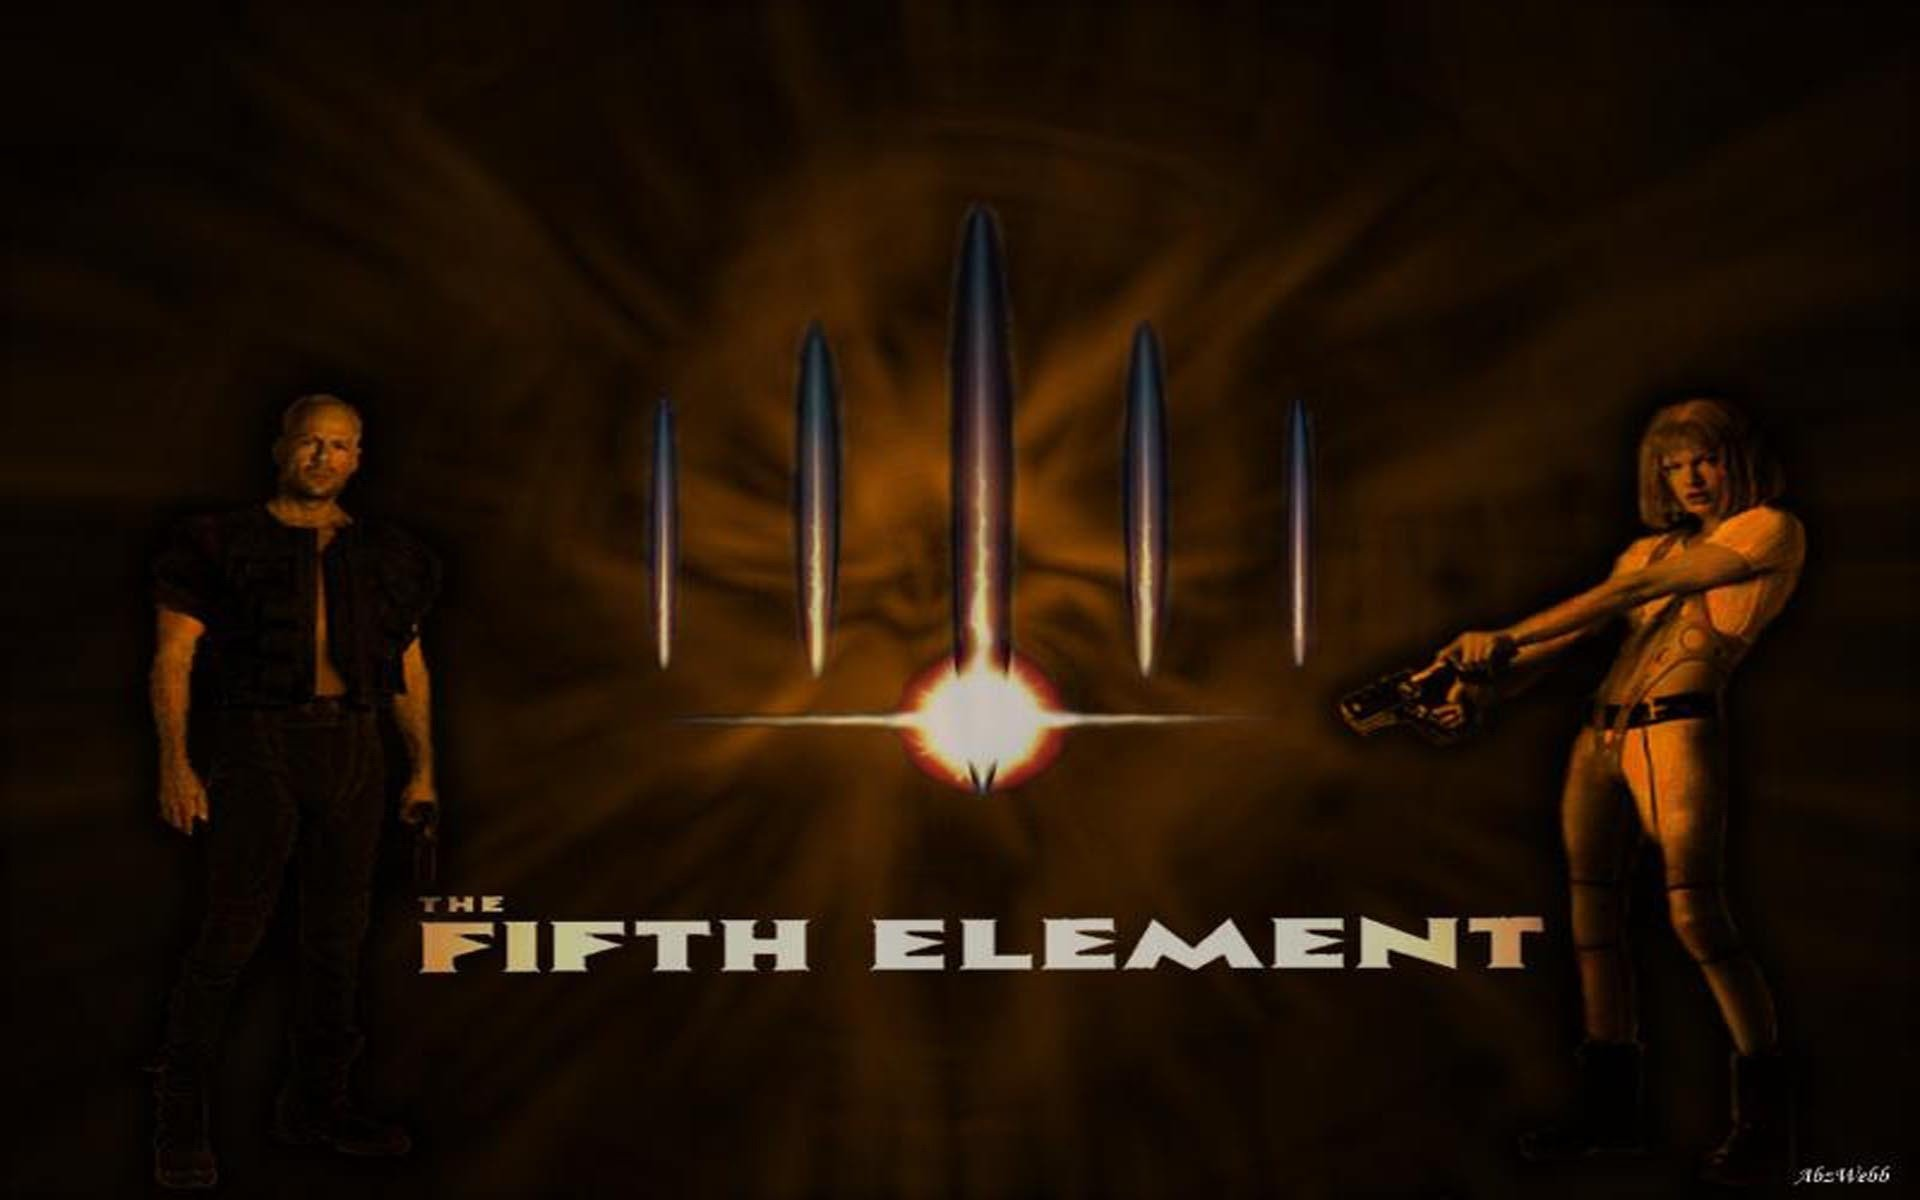 The Fifth Element   The Fifth Element Wallpaper 7390521 1920x1200